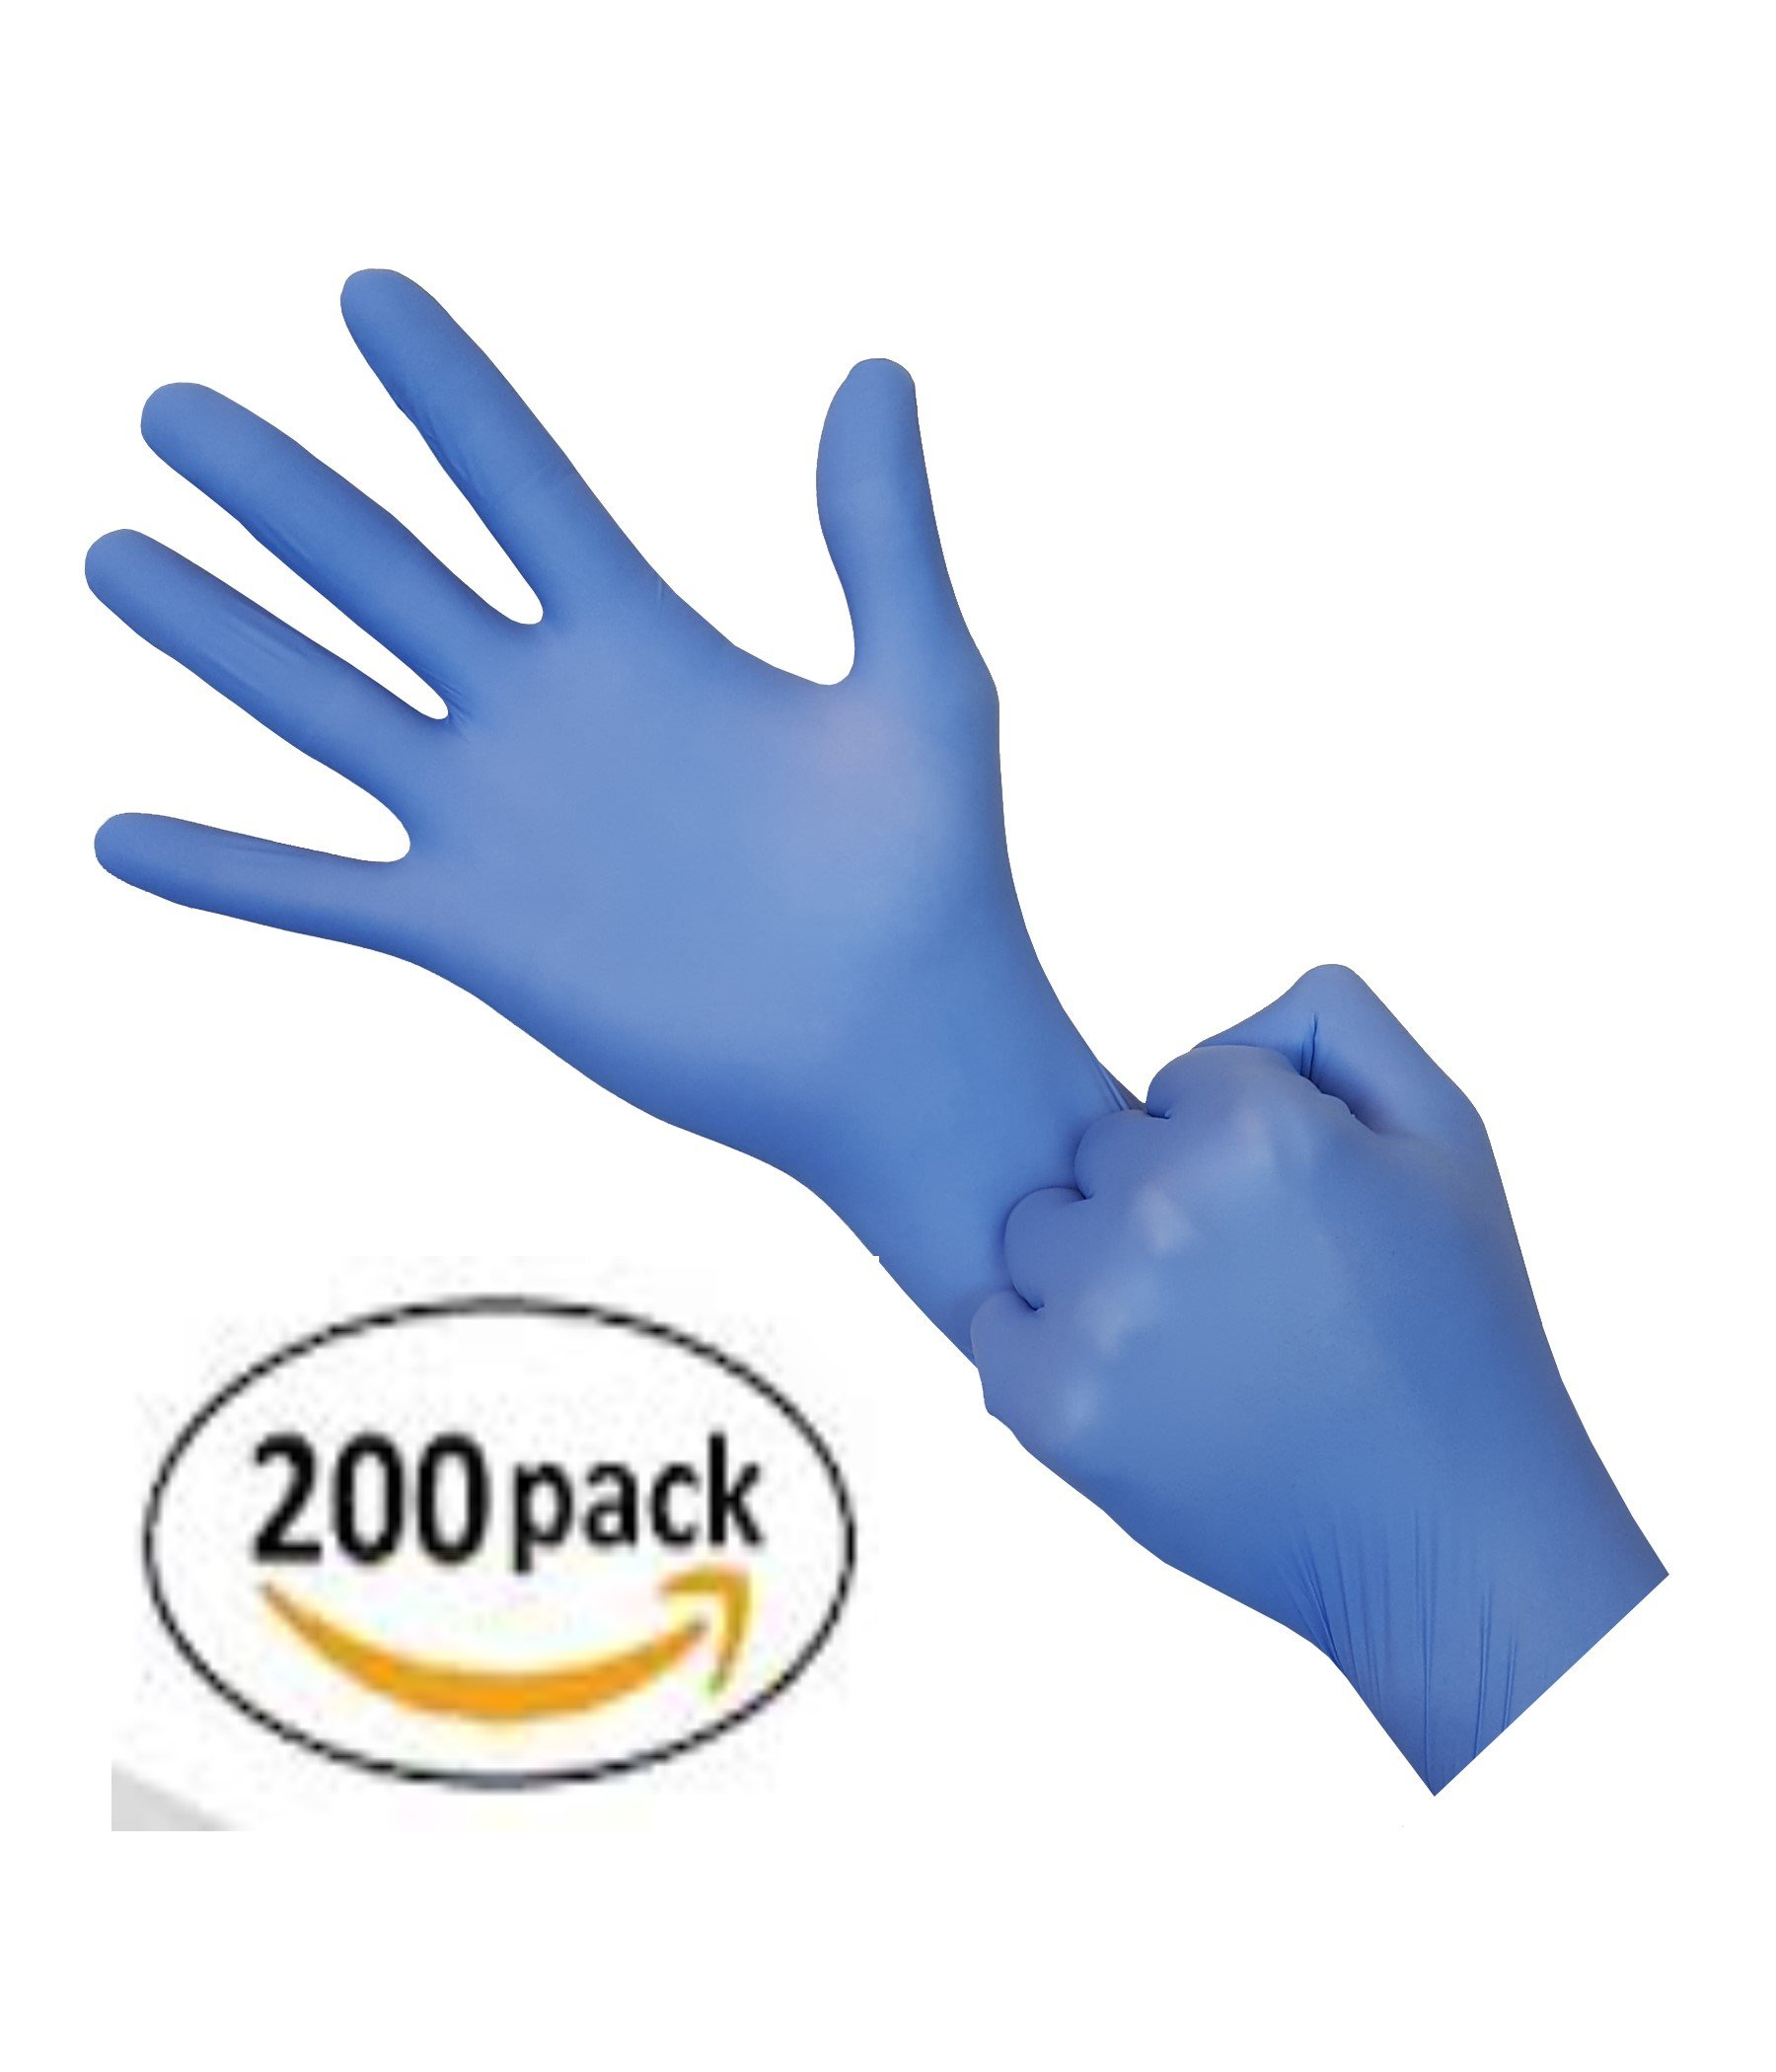 NEW Transform Nitrile Gloves - Powder Free Latex Rubber Free, Exam Medical Grade, Disposable, Non Sterile, Food Safe, Textured, Blue Color, Convenient Dispenser, Eco Pack 200 Count (Size MEDIUM)